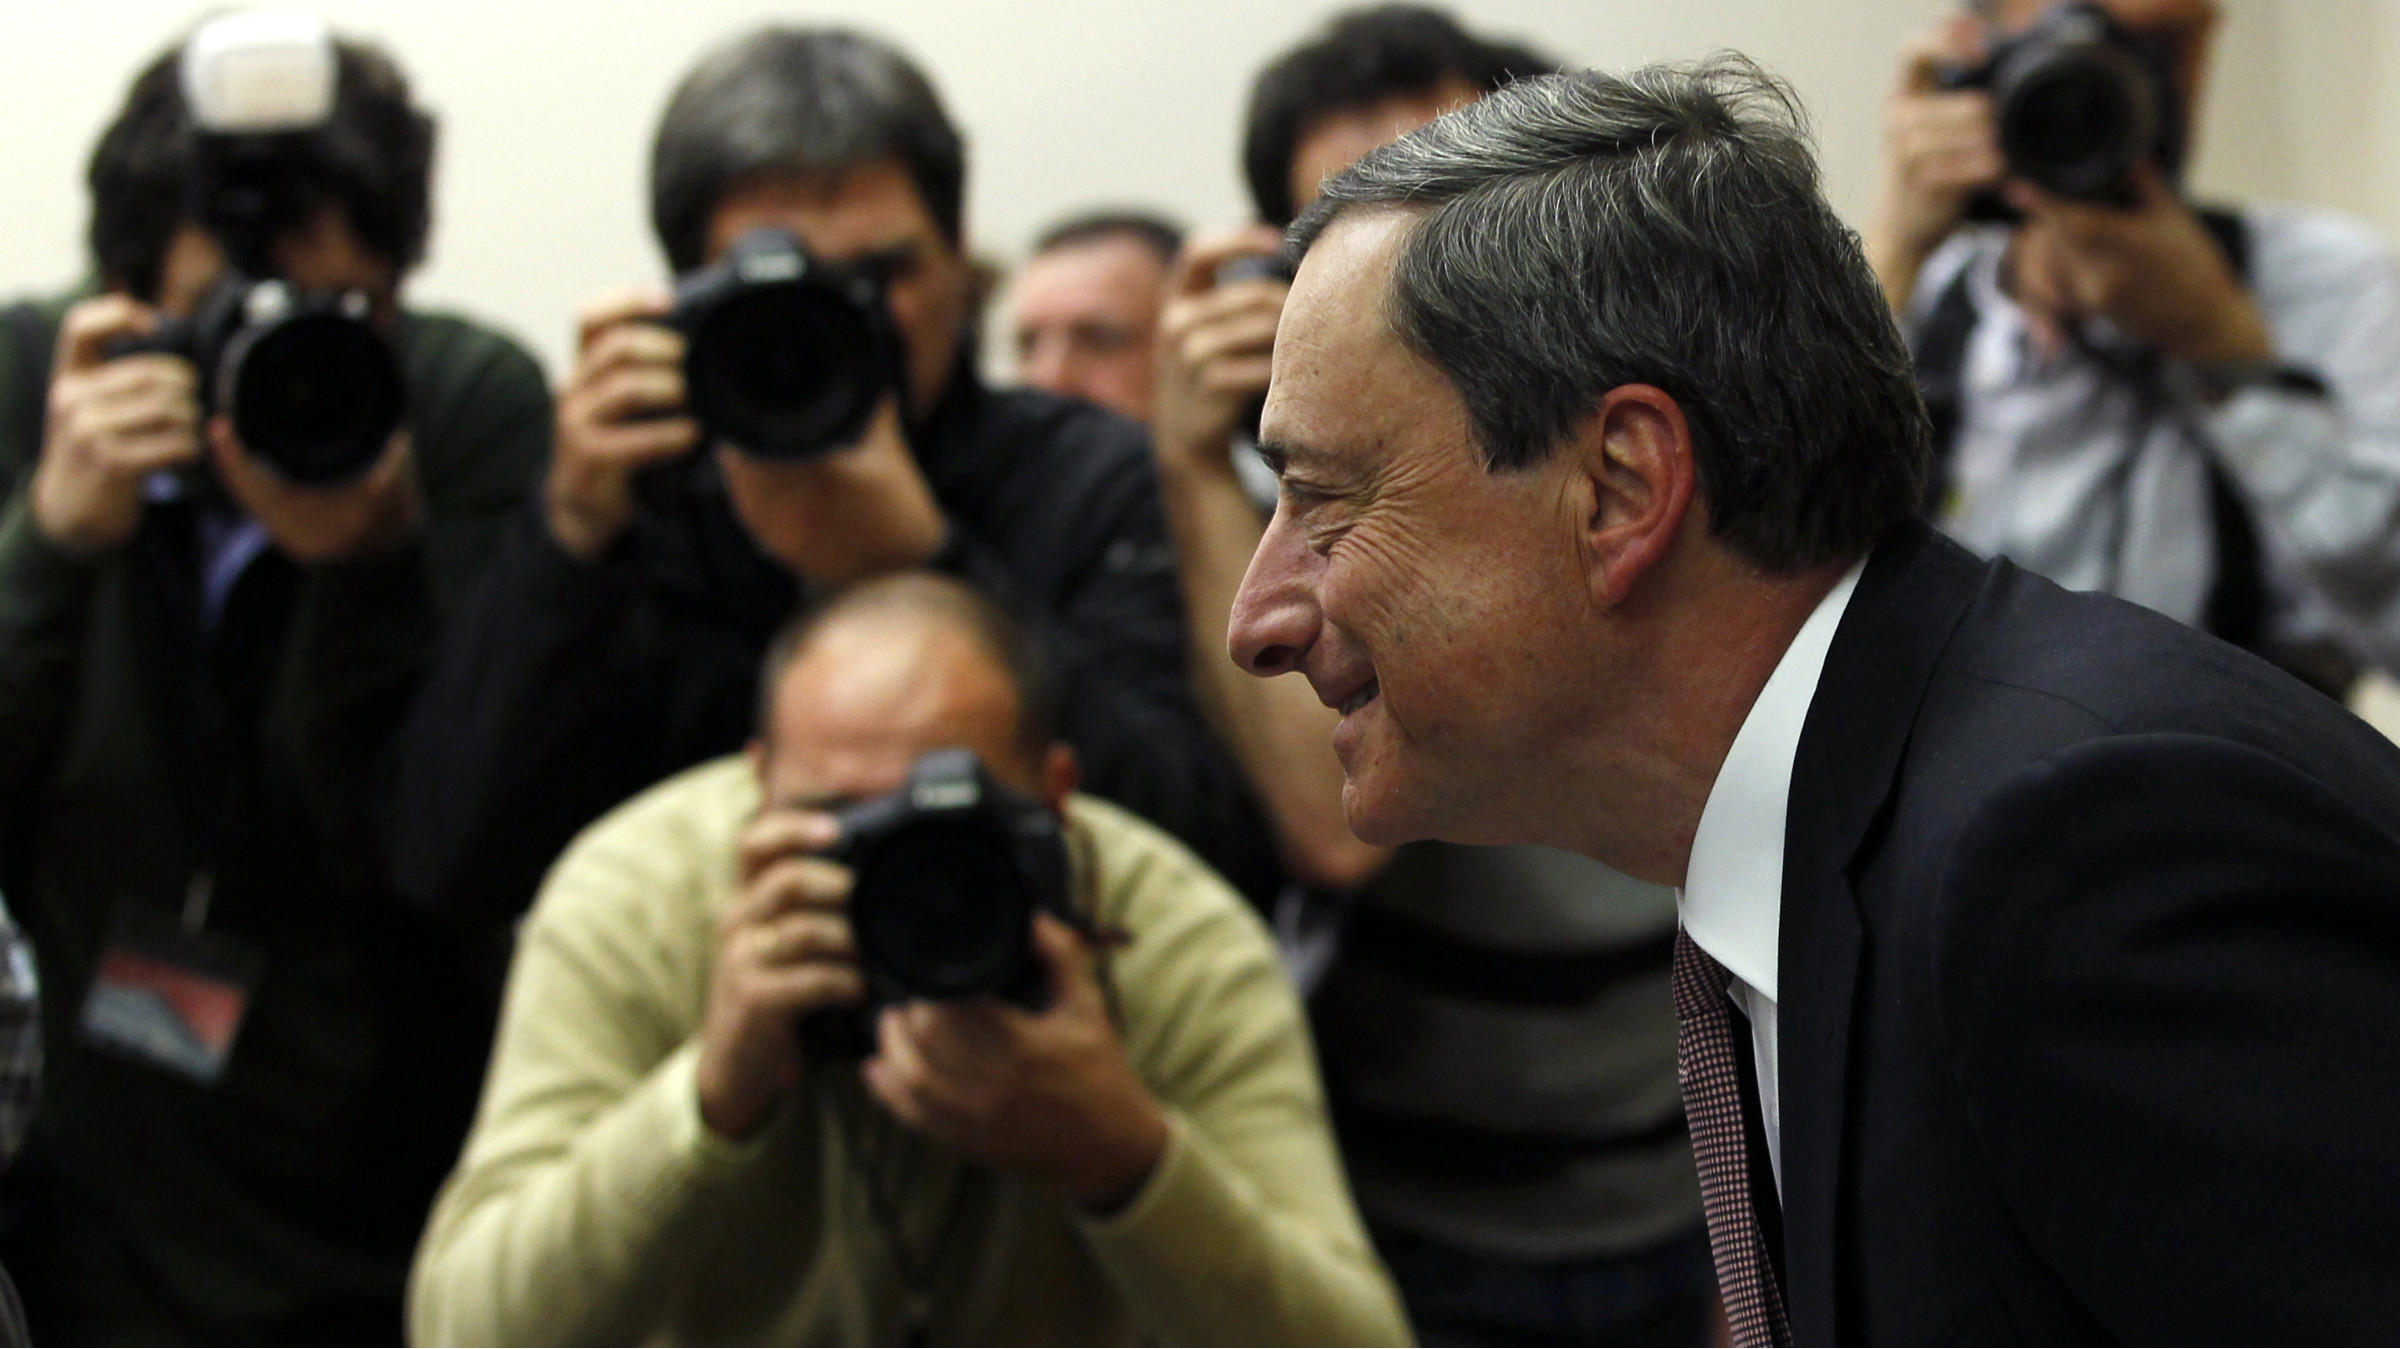 Everyone is watching to see whether Mario Draghi will reopen the monetary taps.